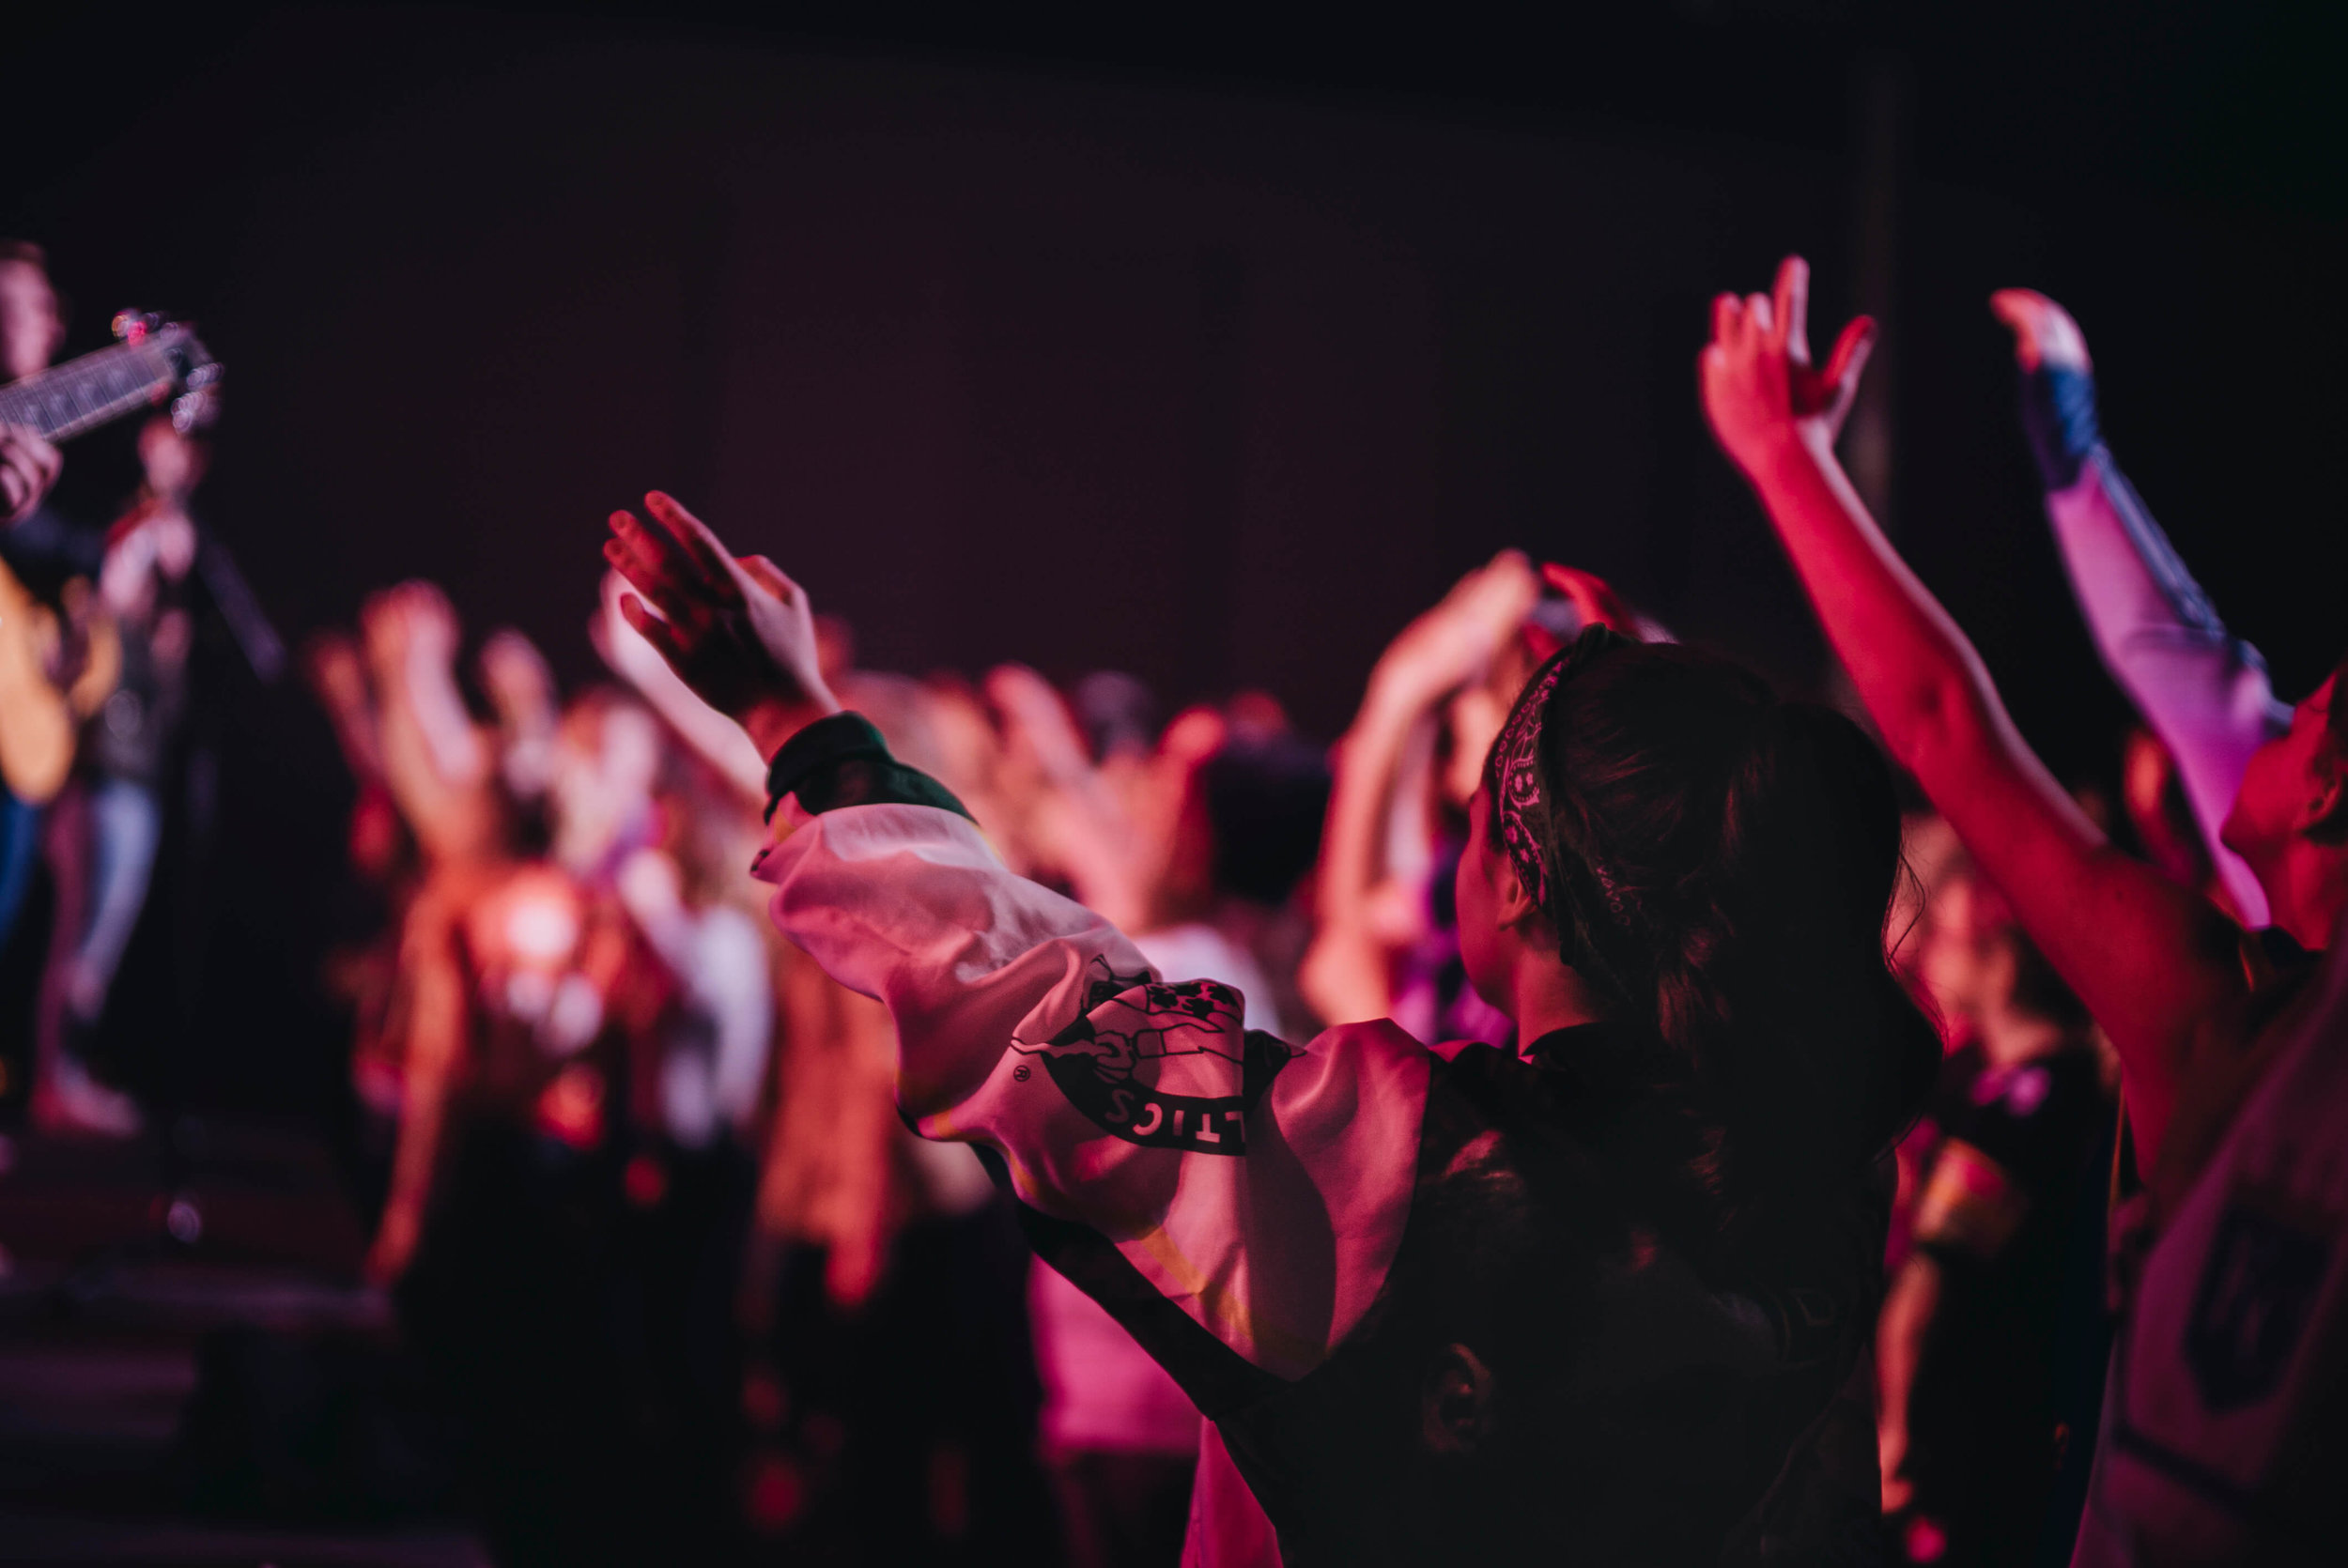 67001_Teen_raising_hands_in_worship (1).jpg